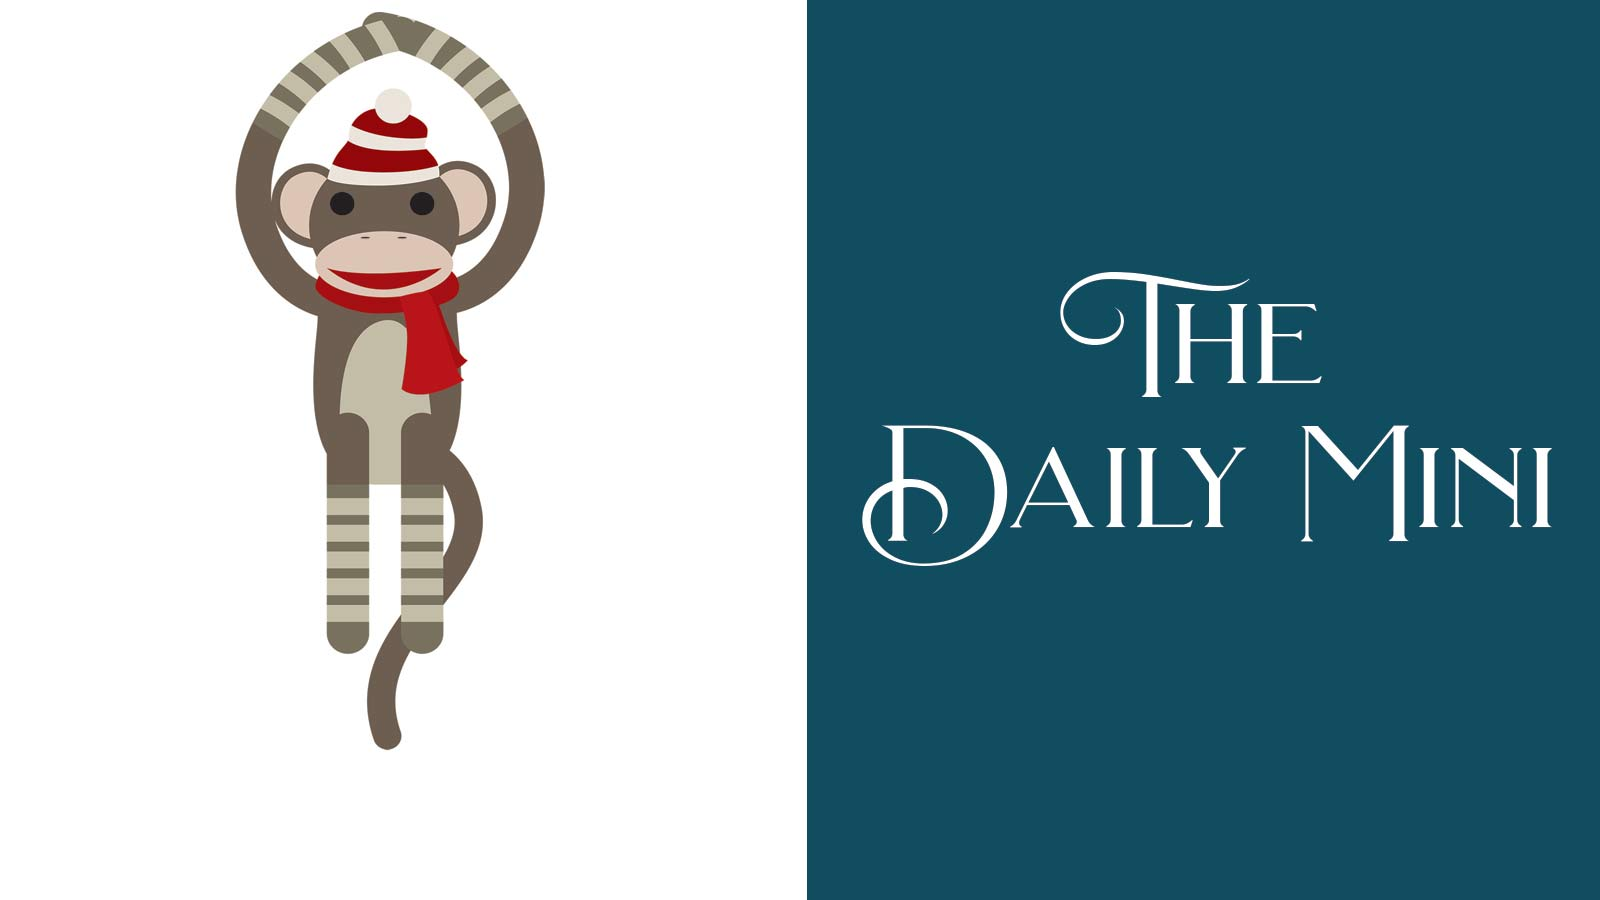 The Daily Mini announcement featuring Sock Monkey